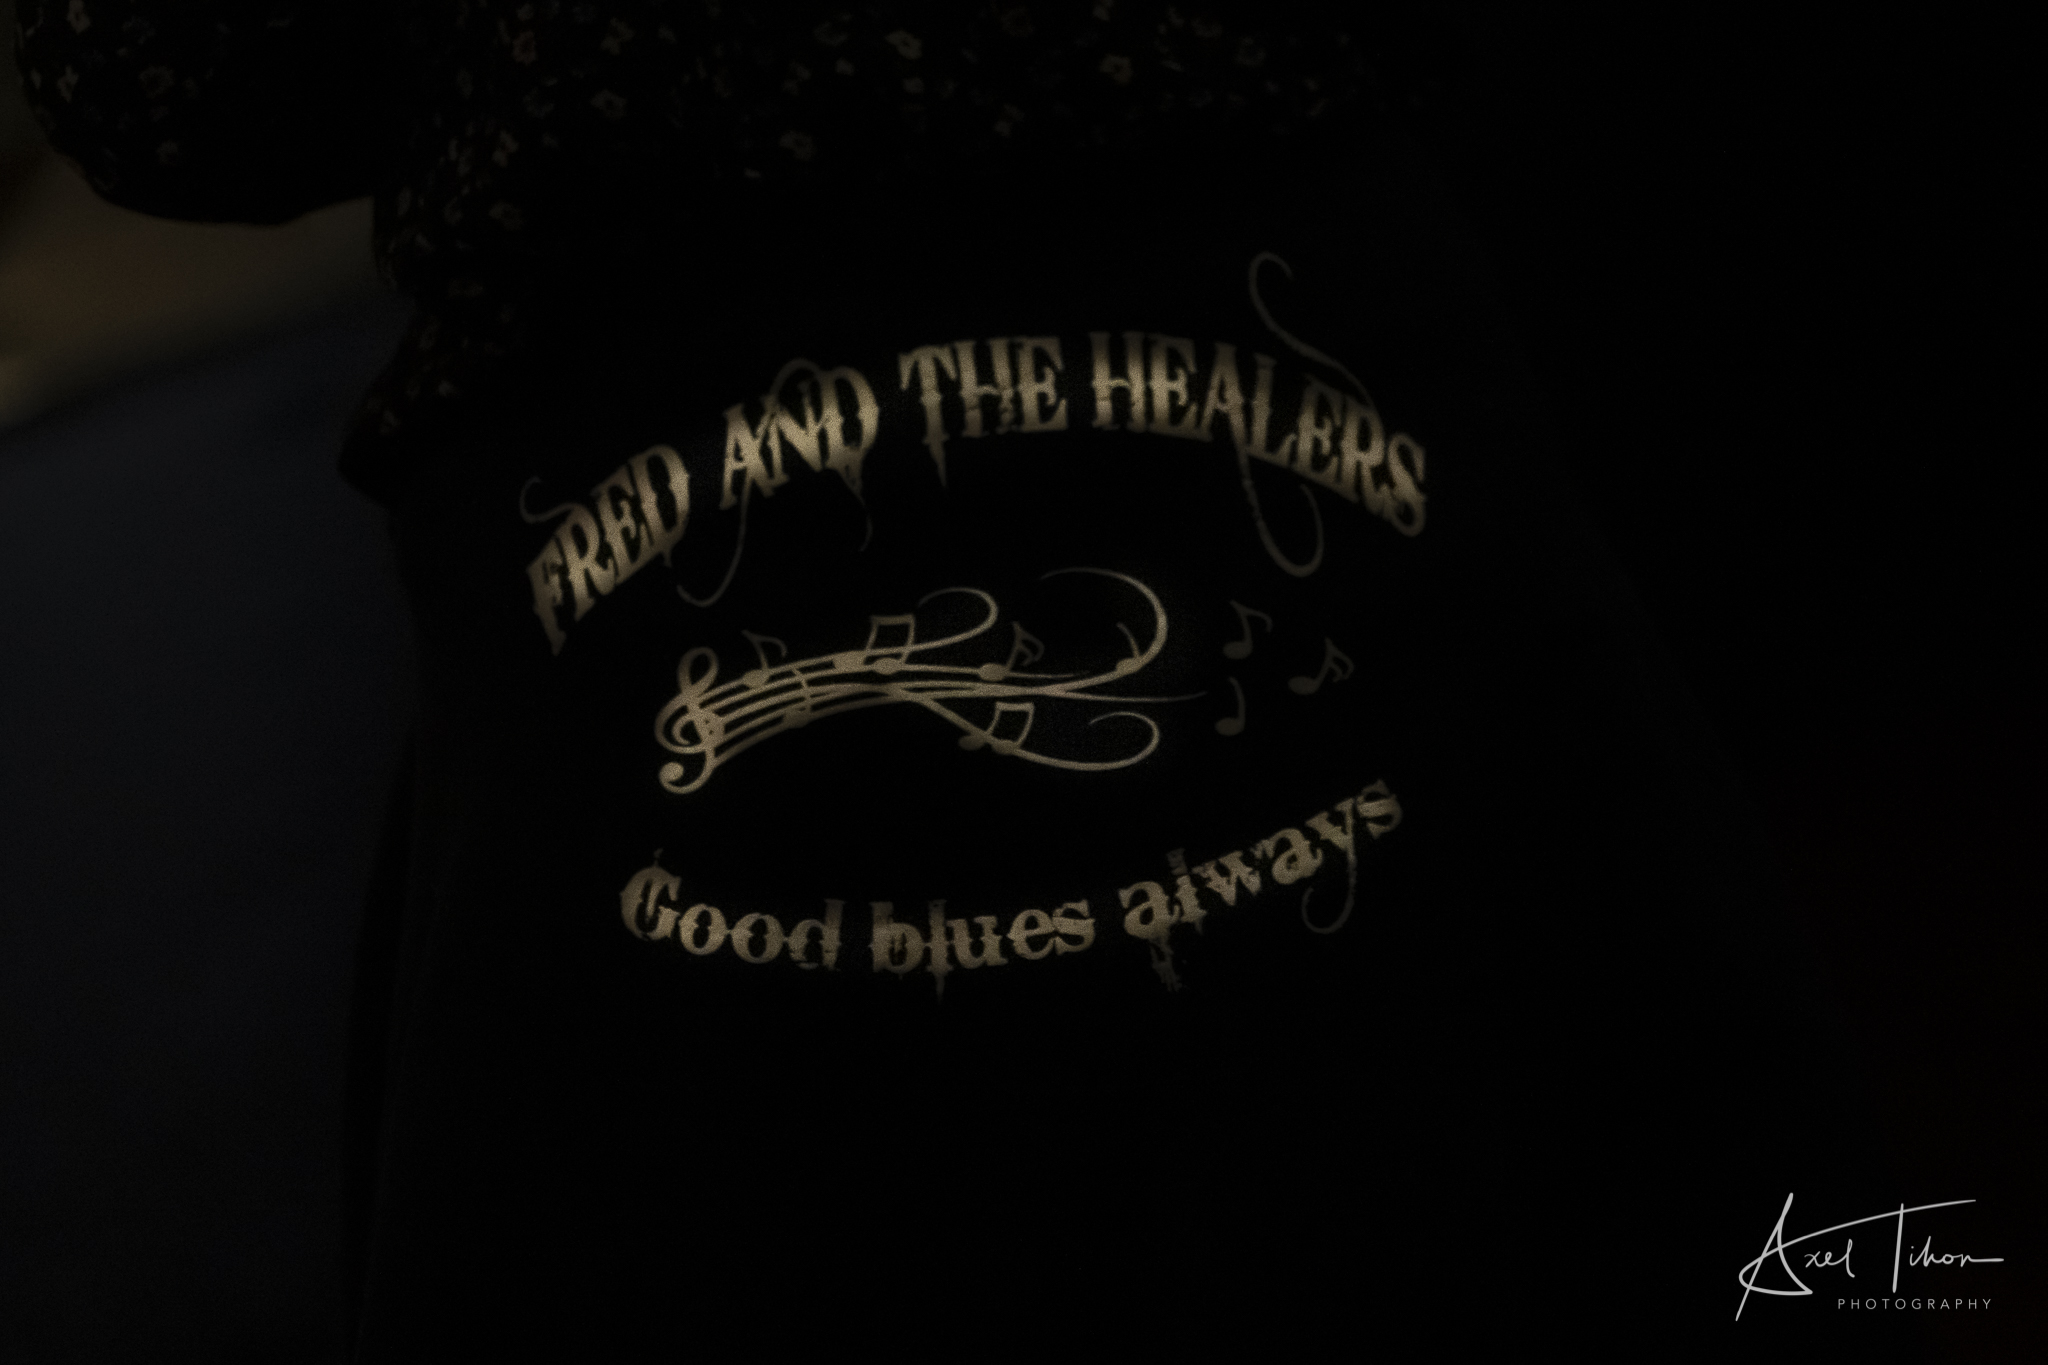 Fred and the healers-3